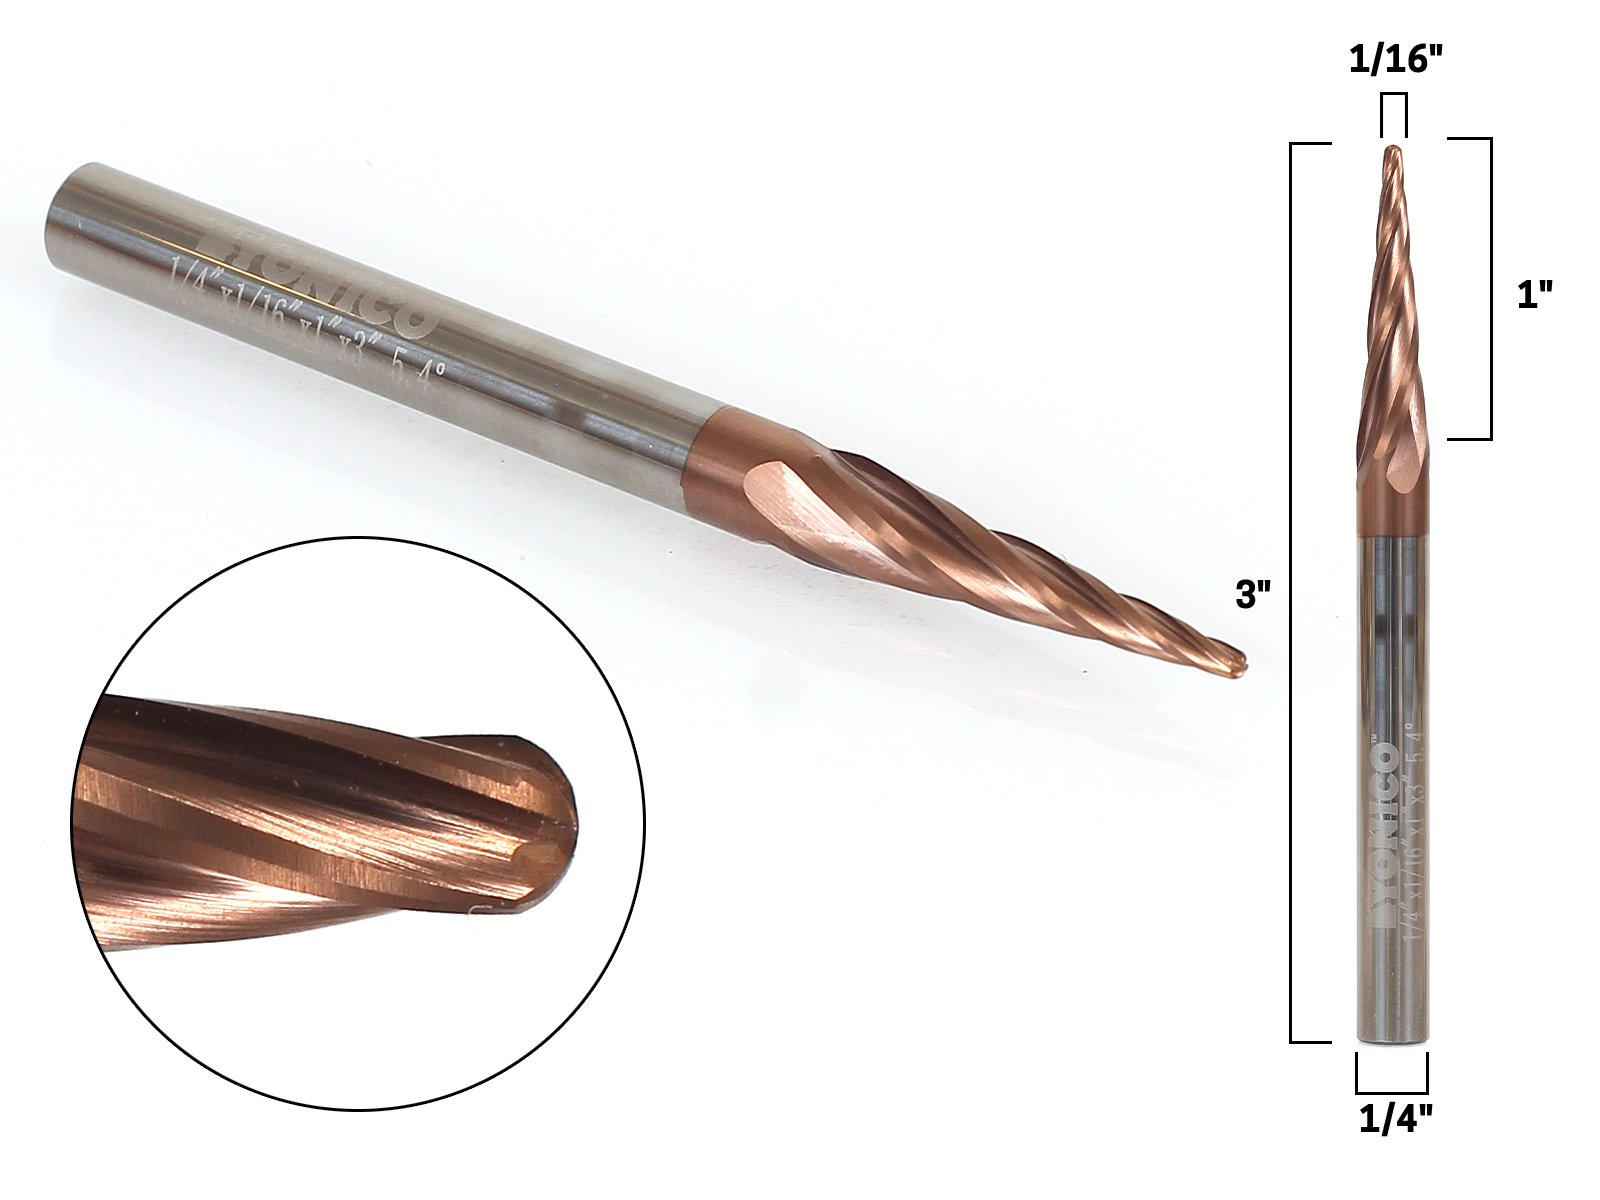 Yonico 37412-SC 1/16'' 4 Flute Taper Spiral ZRN Coated CNC Router Bit with 1/4'' Shank